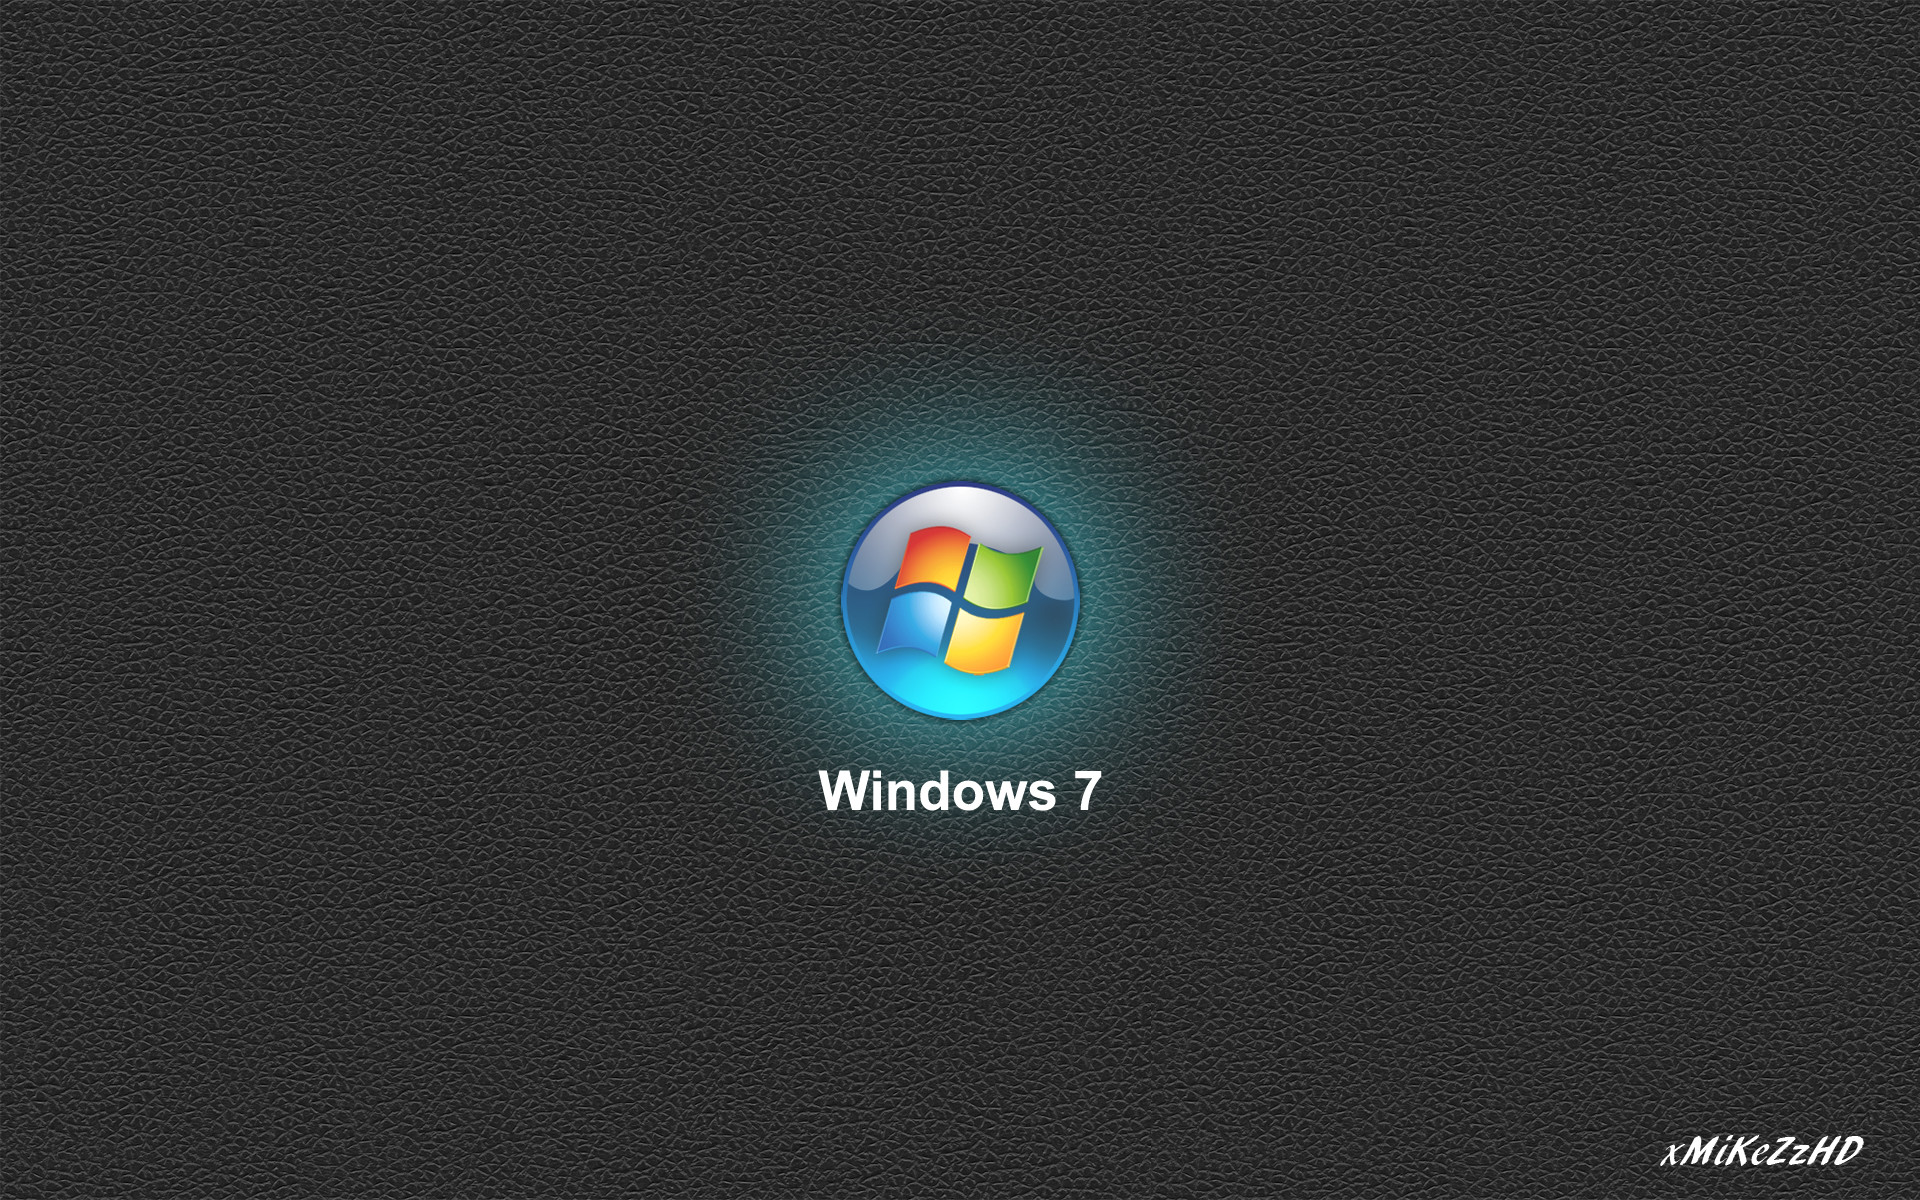 1920x1200 leather wallpaper windows 7 by xMiKeZzHD leather wallpaper windows 7 by  xMiKeZzHD